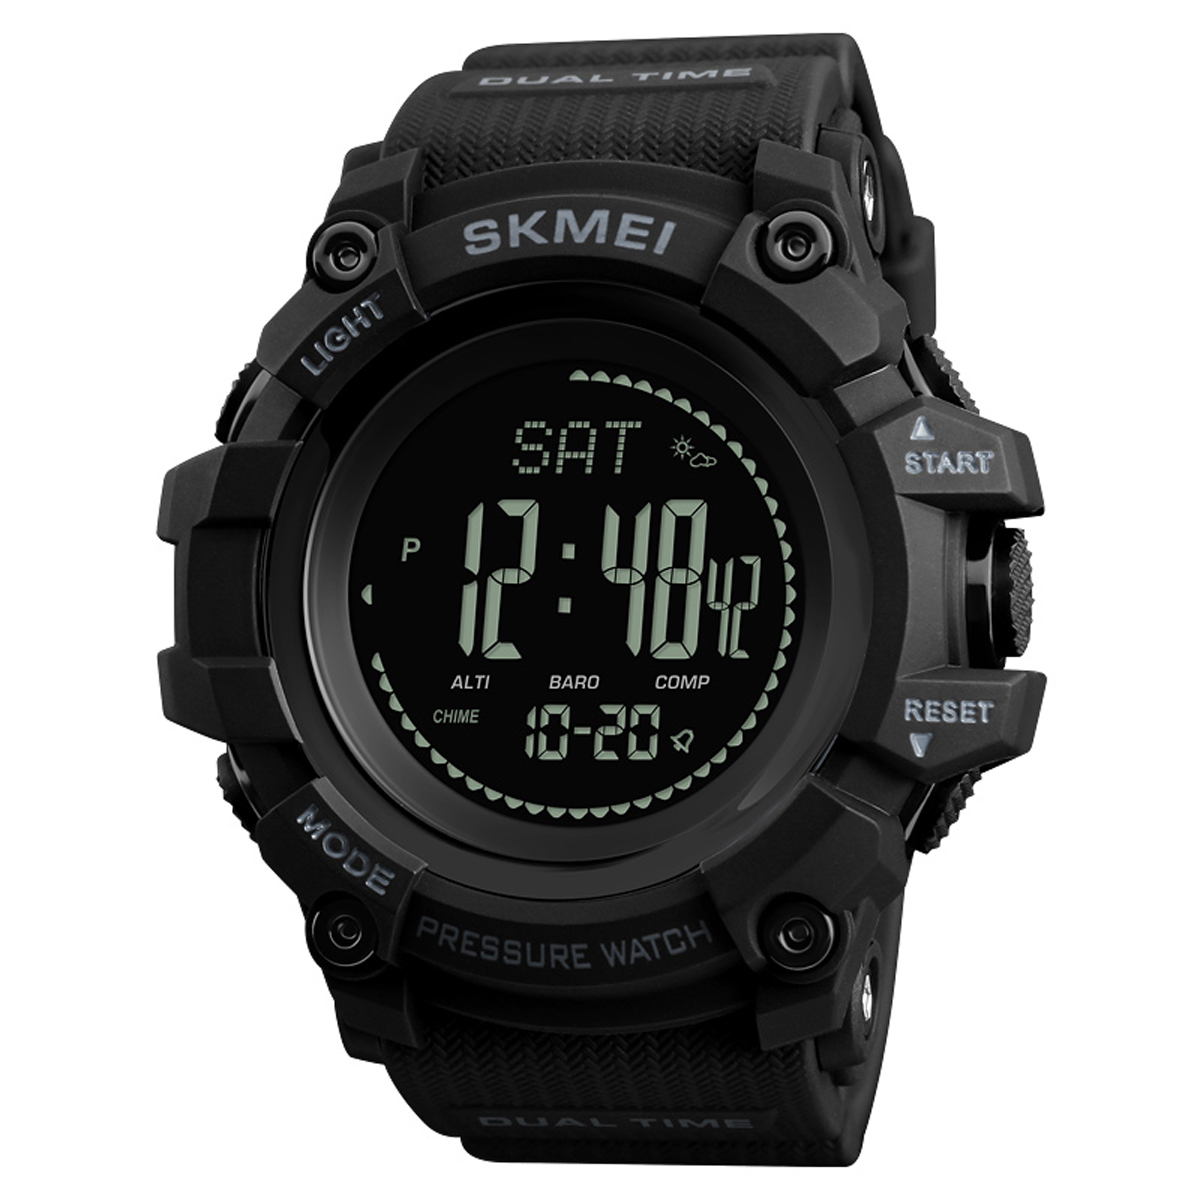 SKMEI 1358 3ATM Waterproof Smart Watch Pedometer Barometer - Black Colour